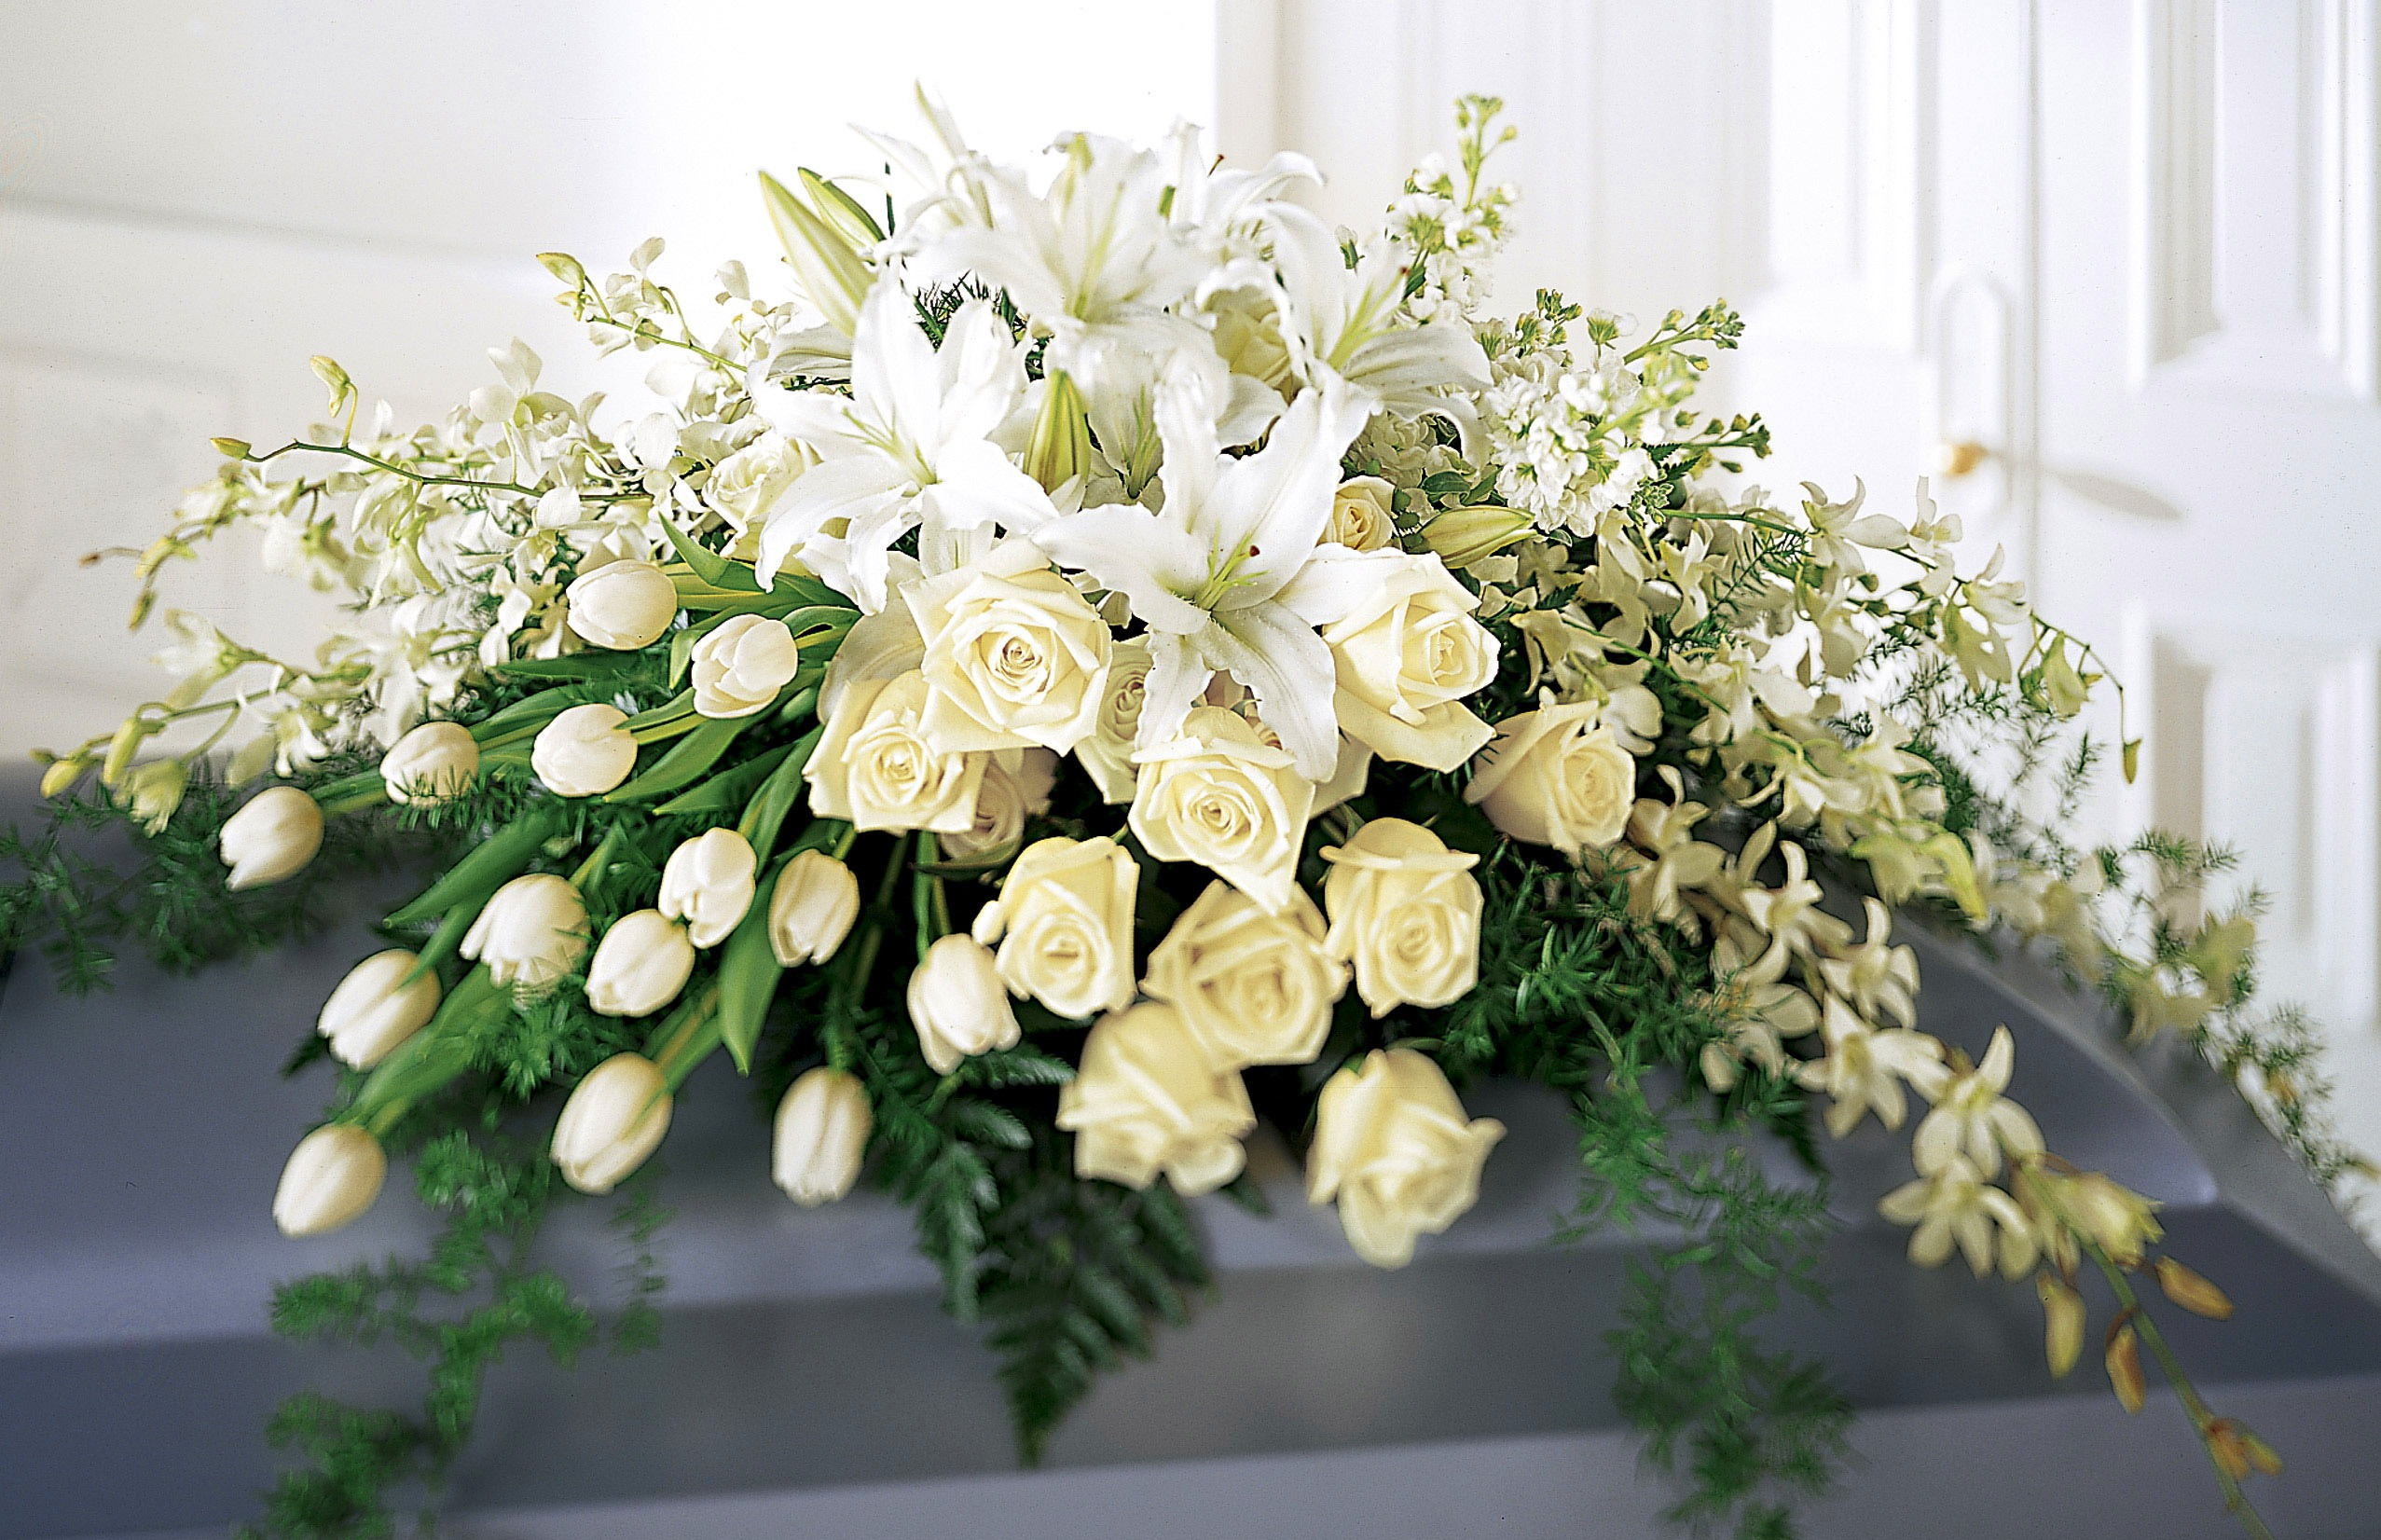 Funeral flowers mayo association of dublin funeral flowers izmirmasajfo